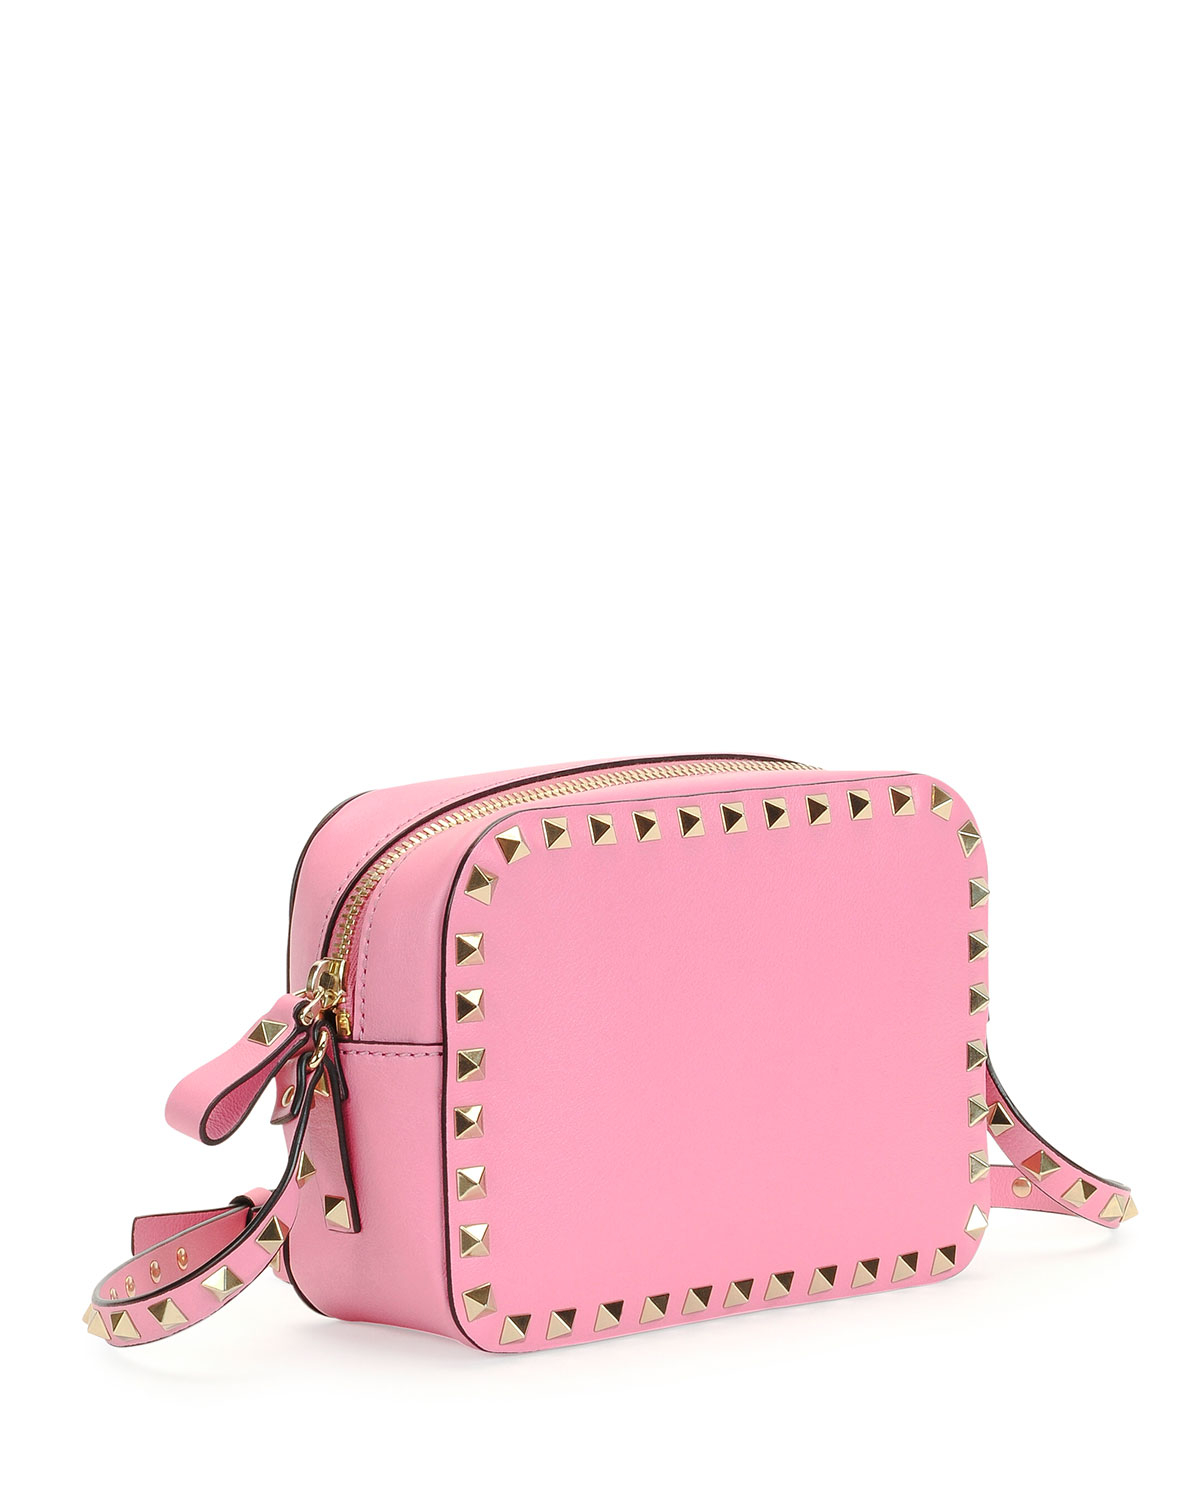 18ff1eb71 Gallery. Previously sold at: Bergdorf Goodman, Neiman Marcus · Women's Camera  Bags Women's Valentino Rockstud Bags